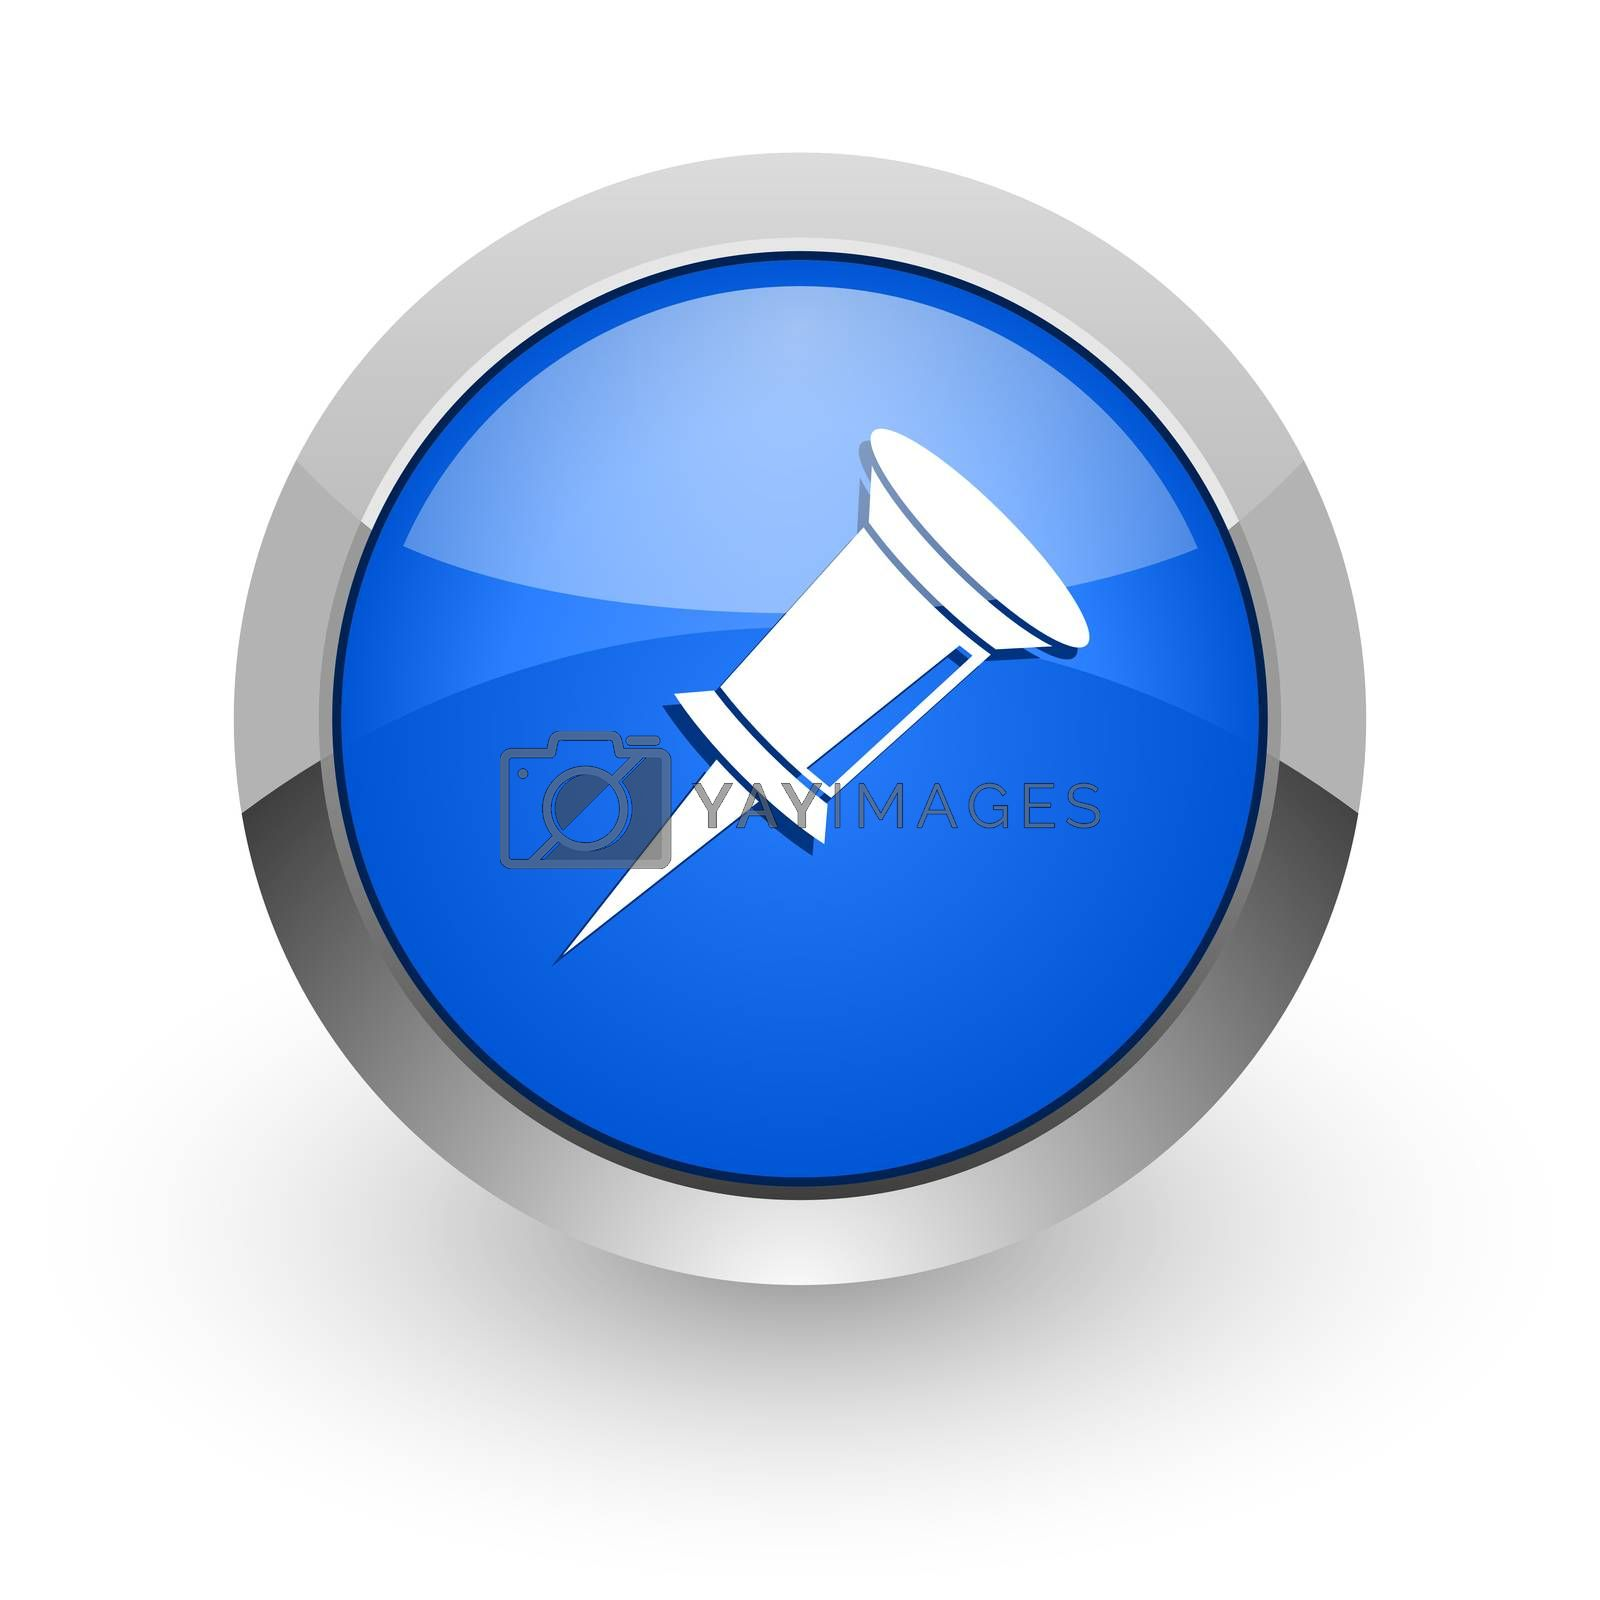 Royalty free image of pin blue glossy web icon by alexwhite